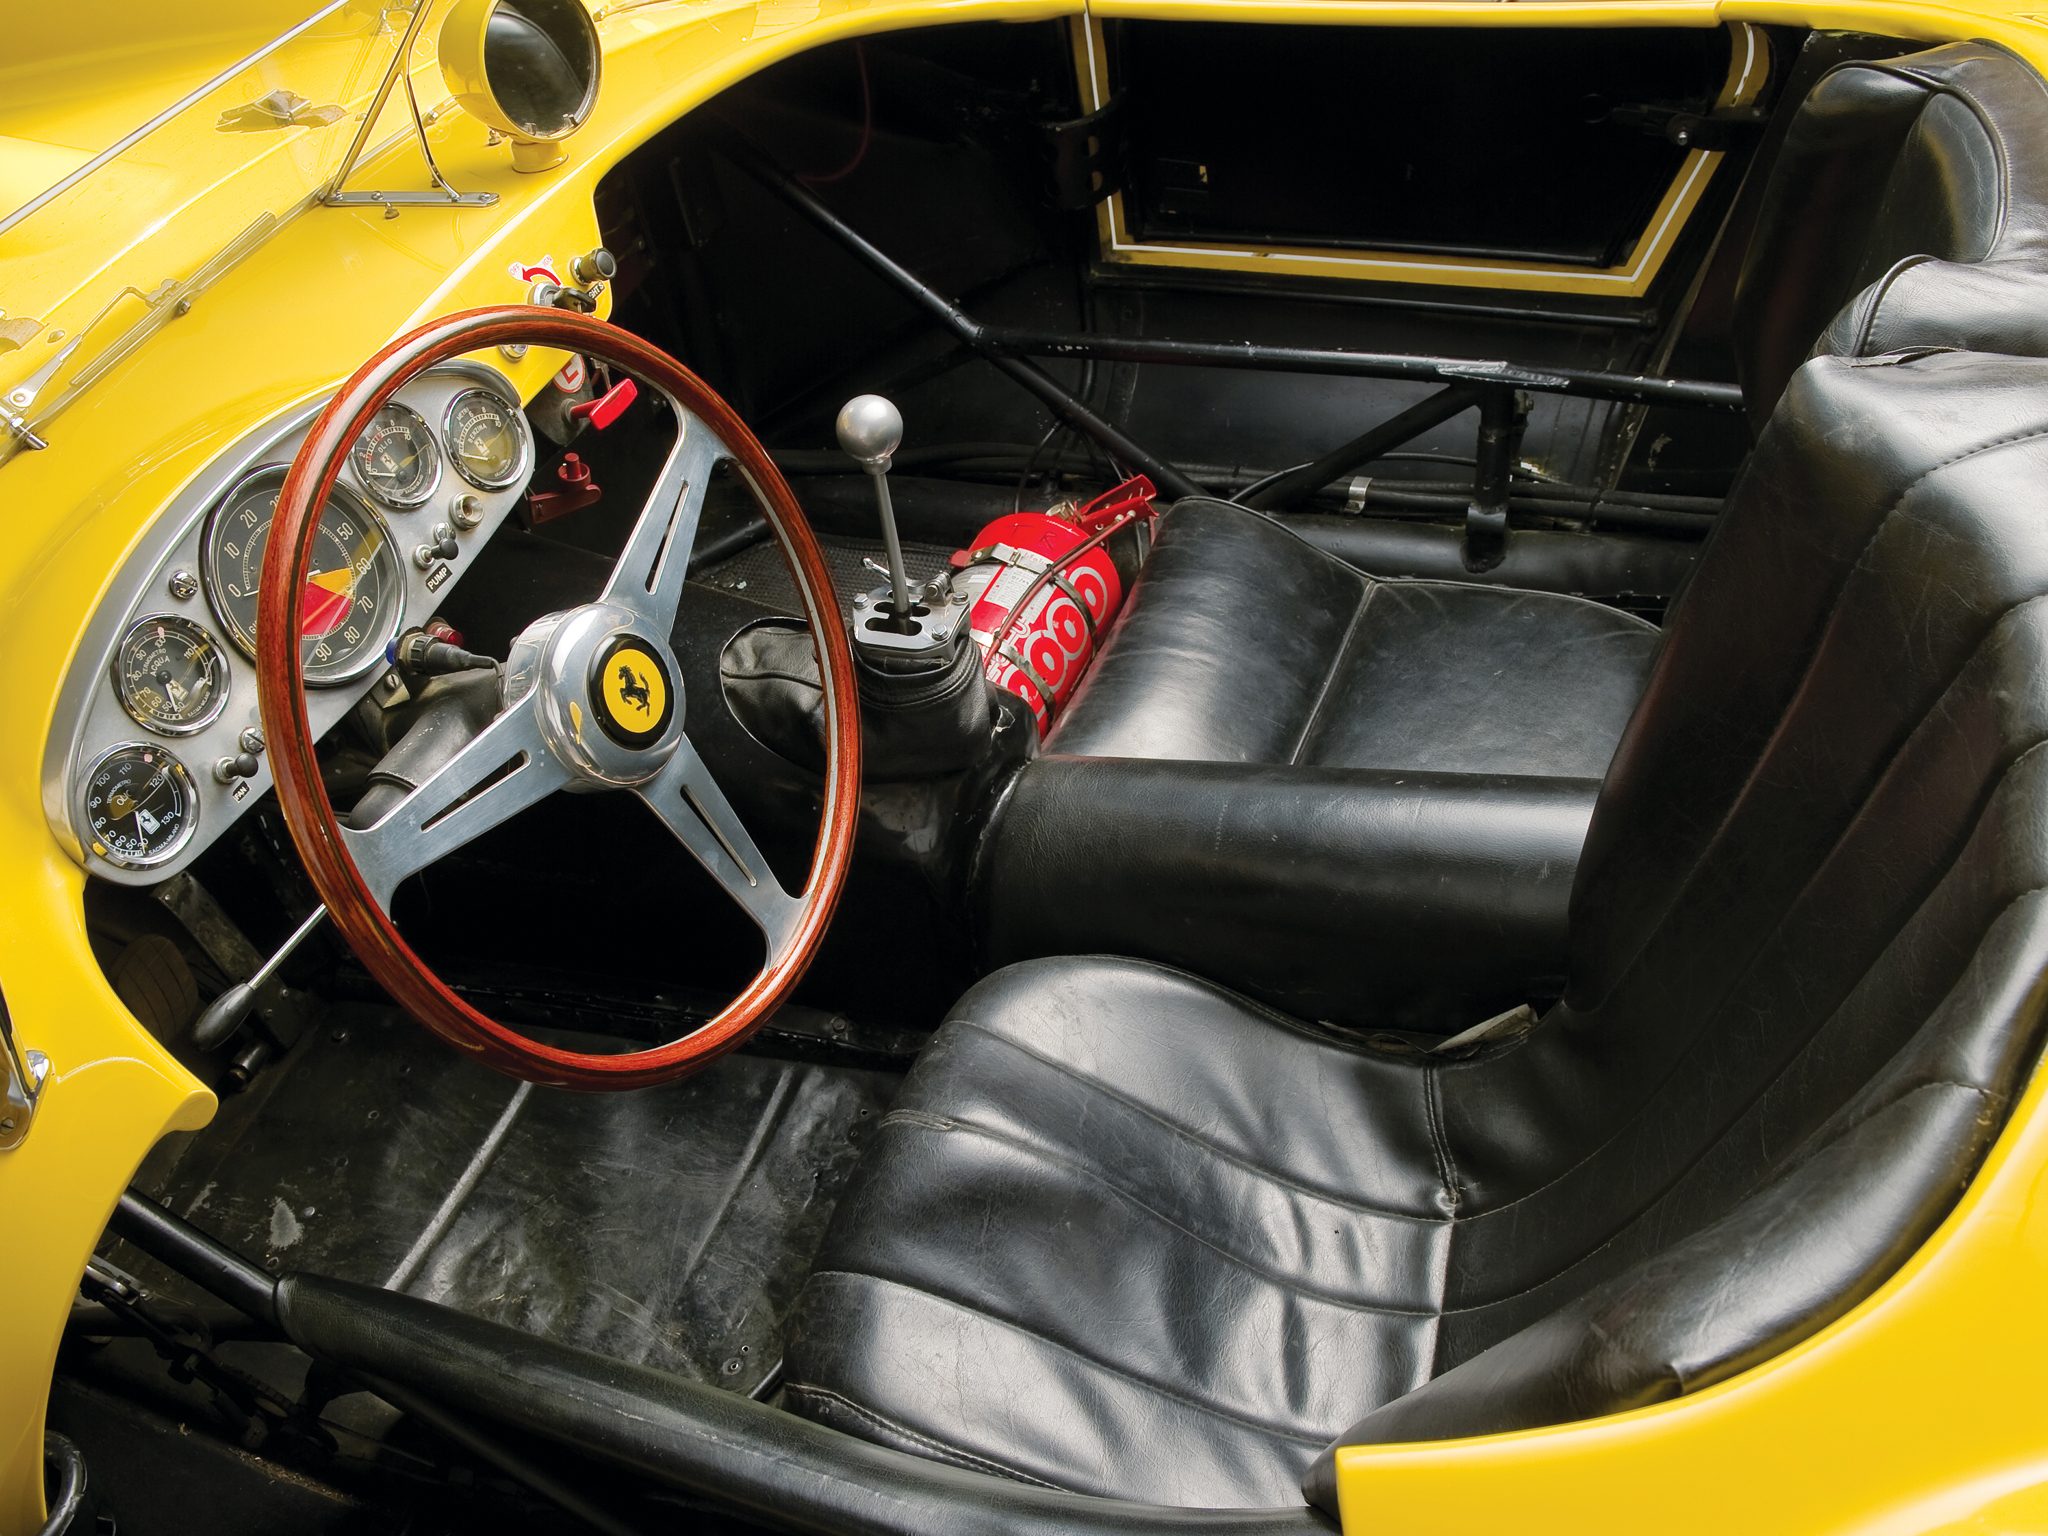 1957 Ferrari 250 Testa Rossa Scaglietti Spyder supercar retro race racing interior engine t